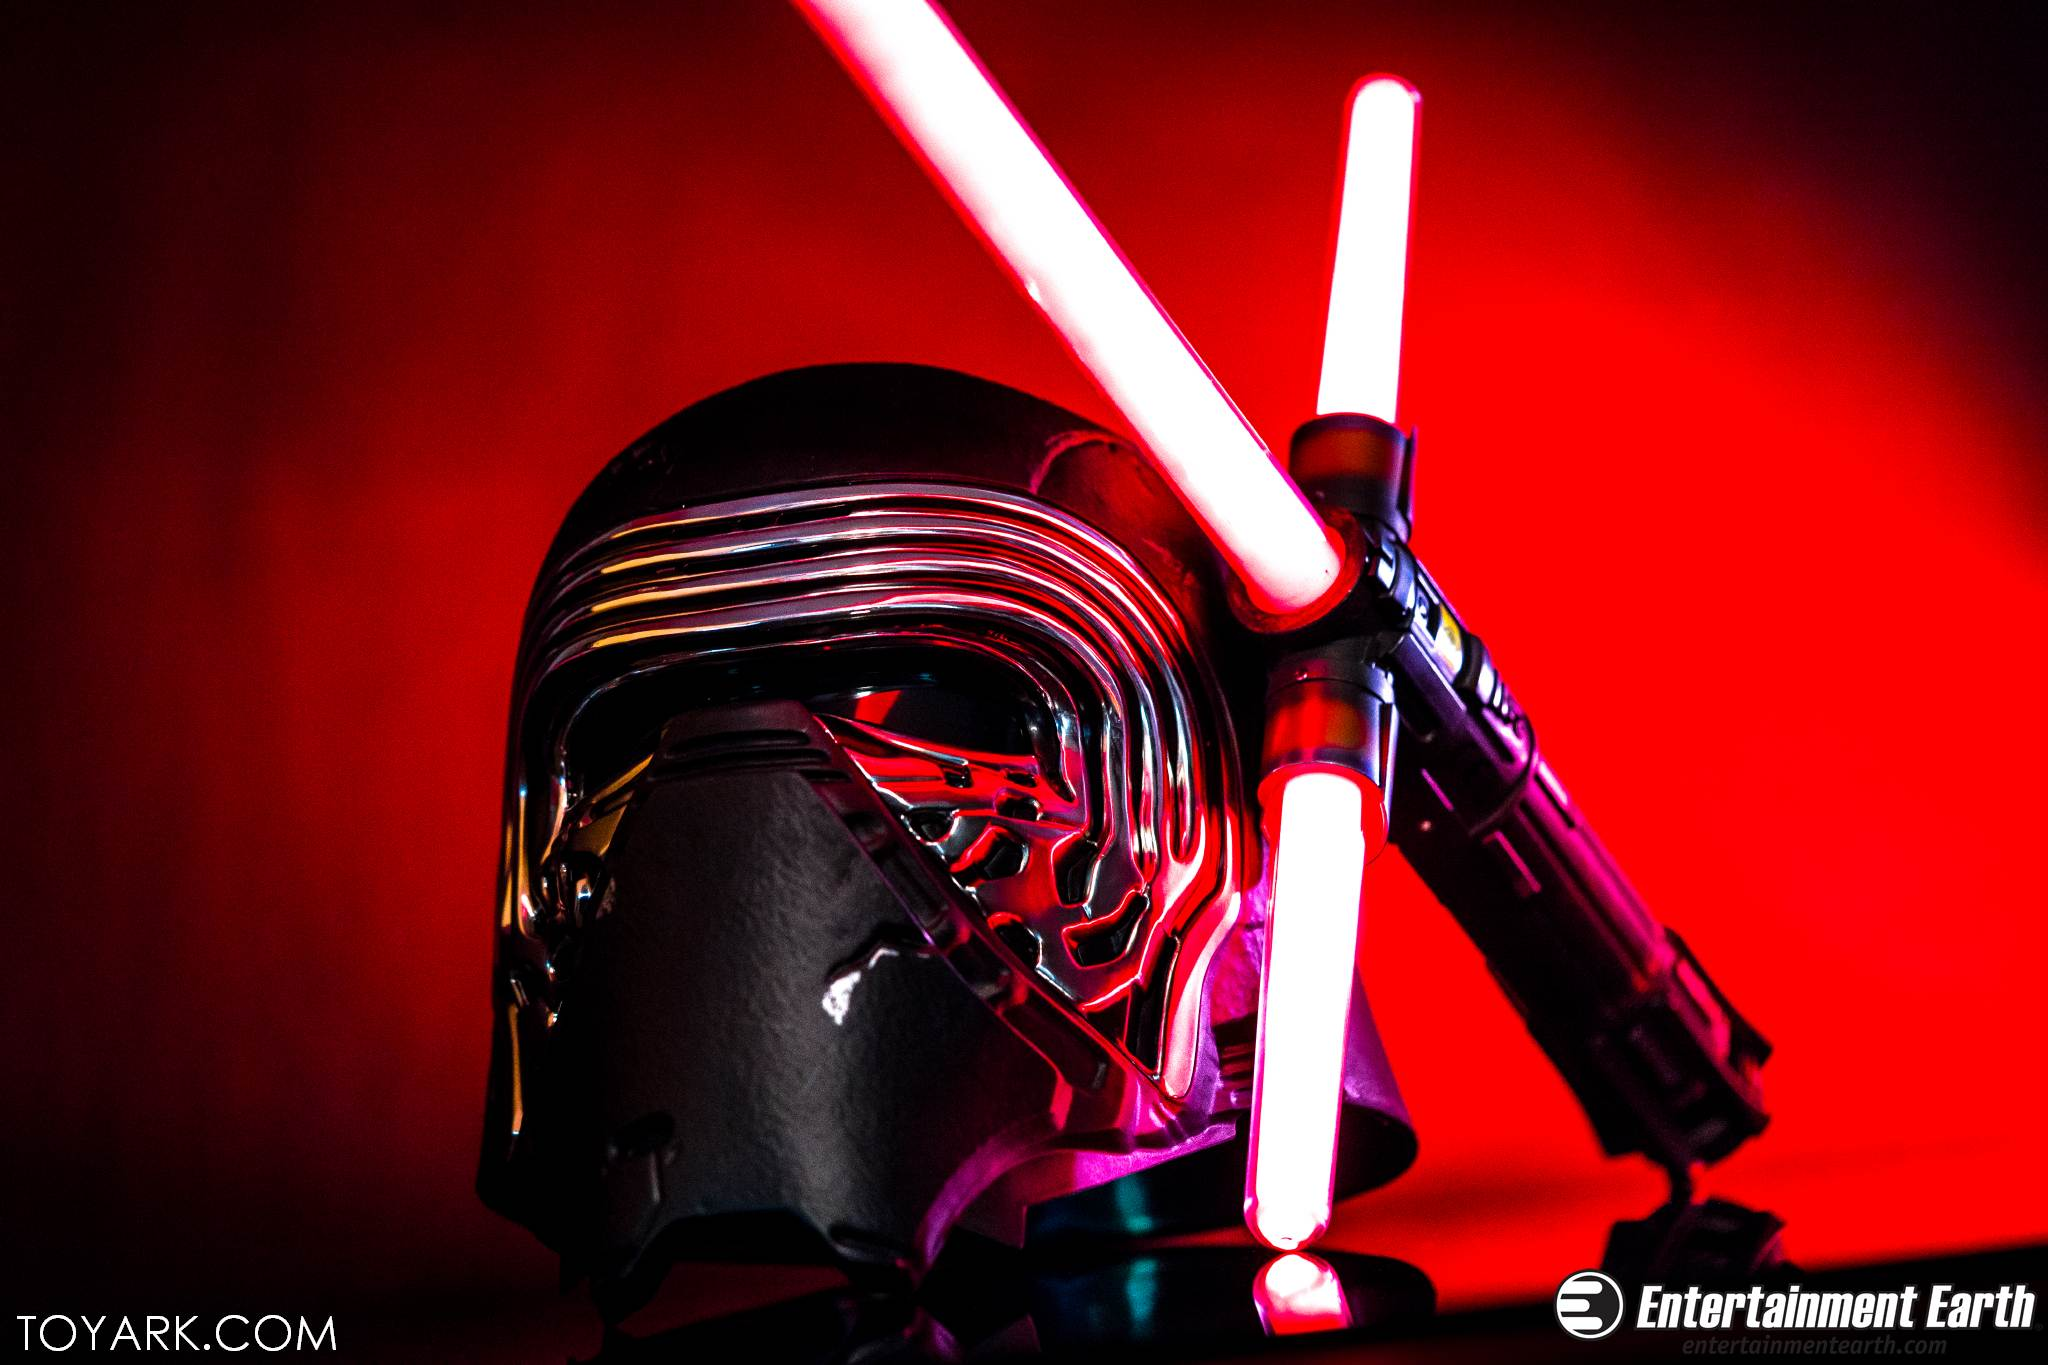 kylo ren force fx lightsaber photo shoot the toyark news. Black Bedroom Furniture Sets. Home Design Ideas